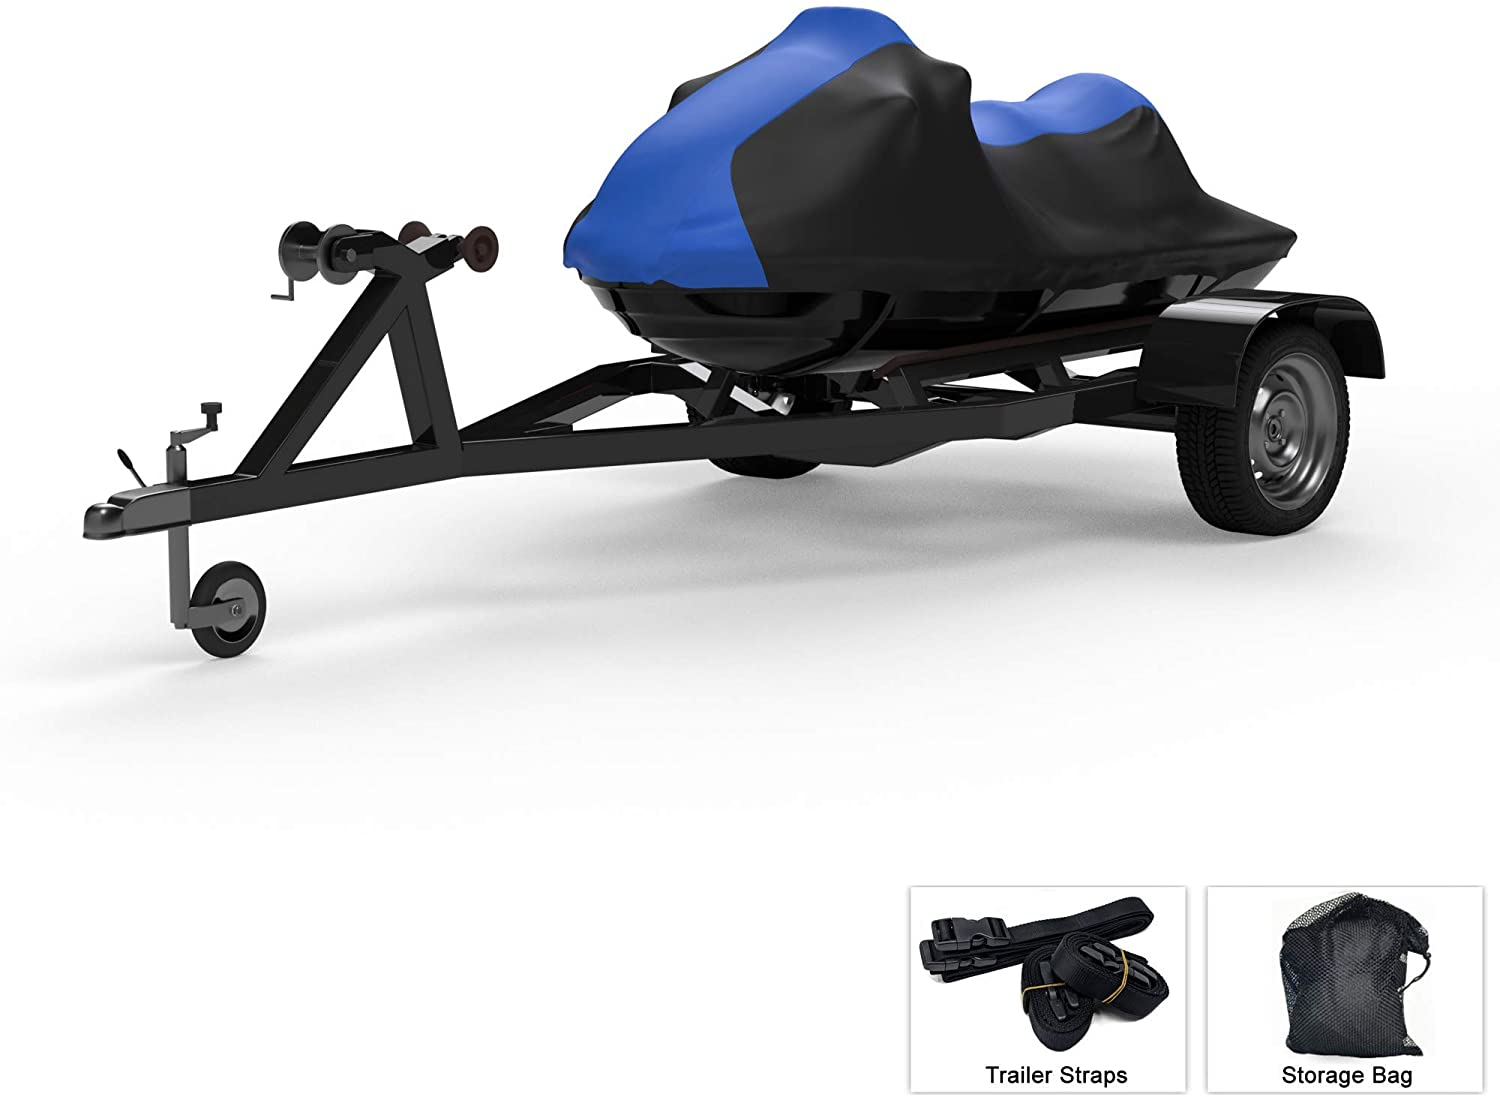 Weatherproof Jet Ski Covers for SEA DOO GTX 155 2010-2019 - Blue/Black Color - All Weather - Trailerable - Protects from Rain, Sun, UV Rays, and More! Includes Trailer Straps and Storage Bag